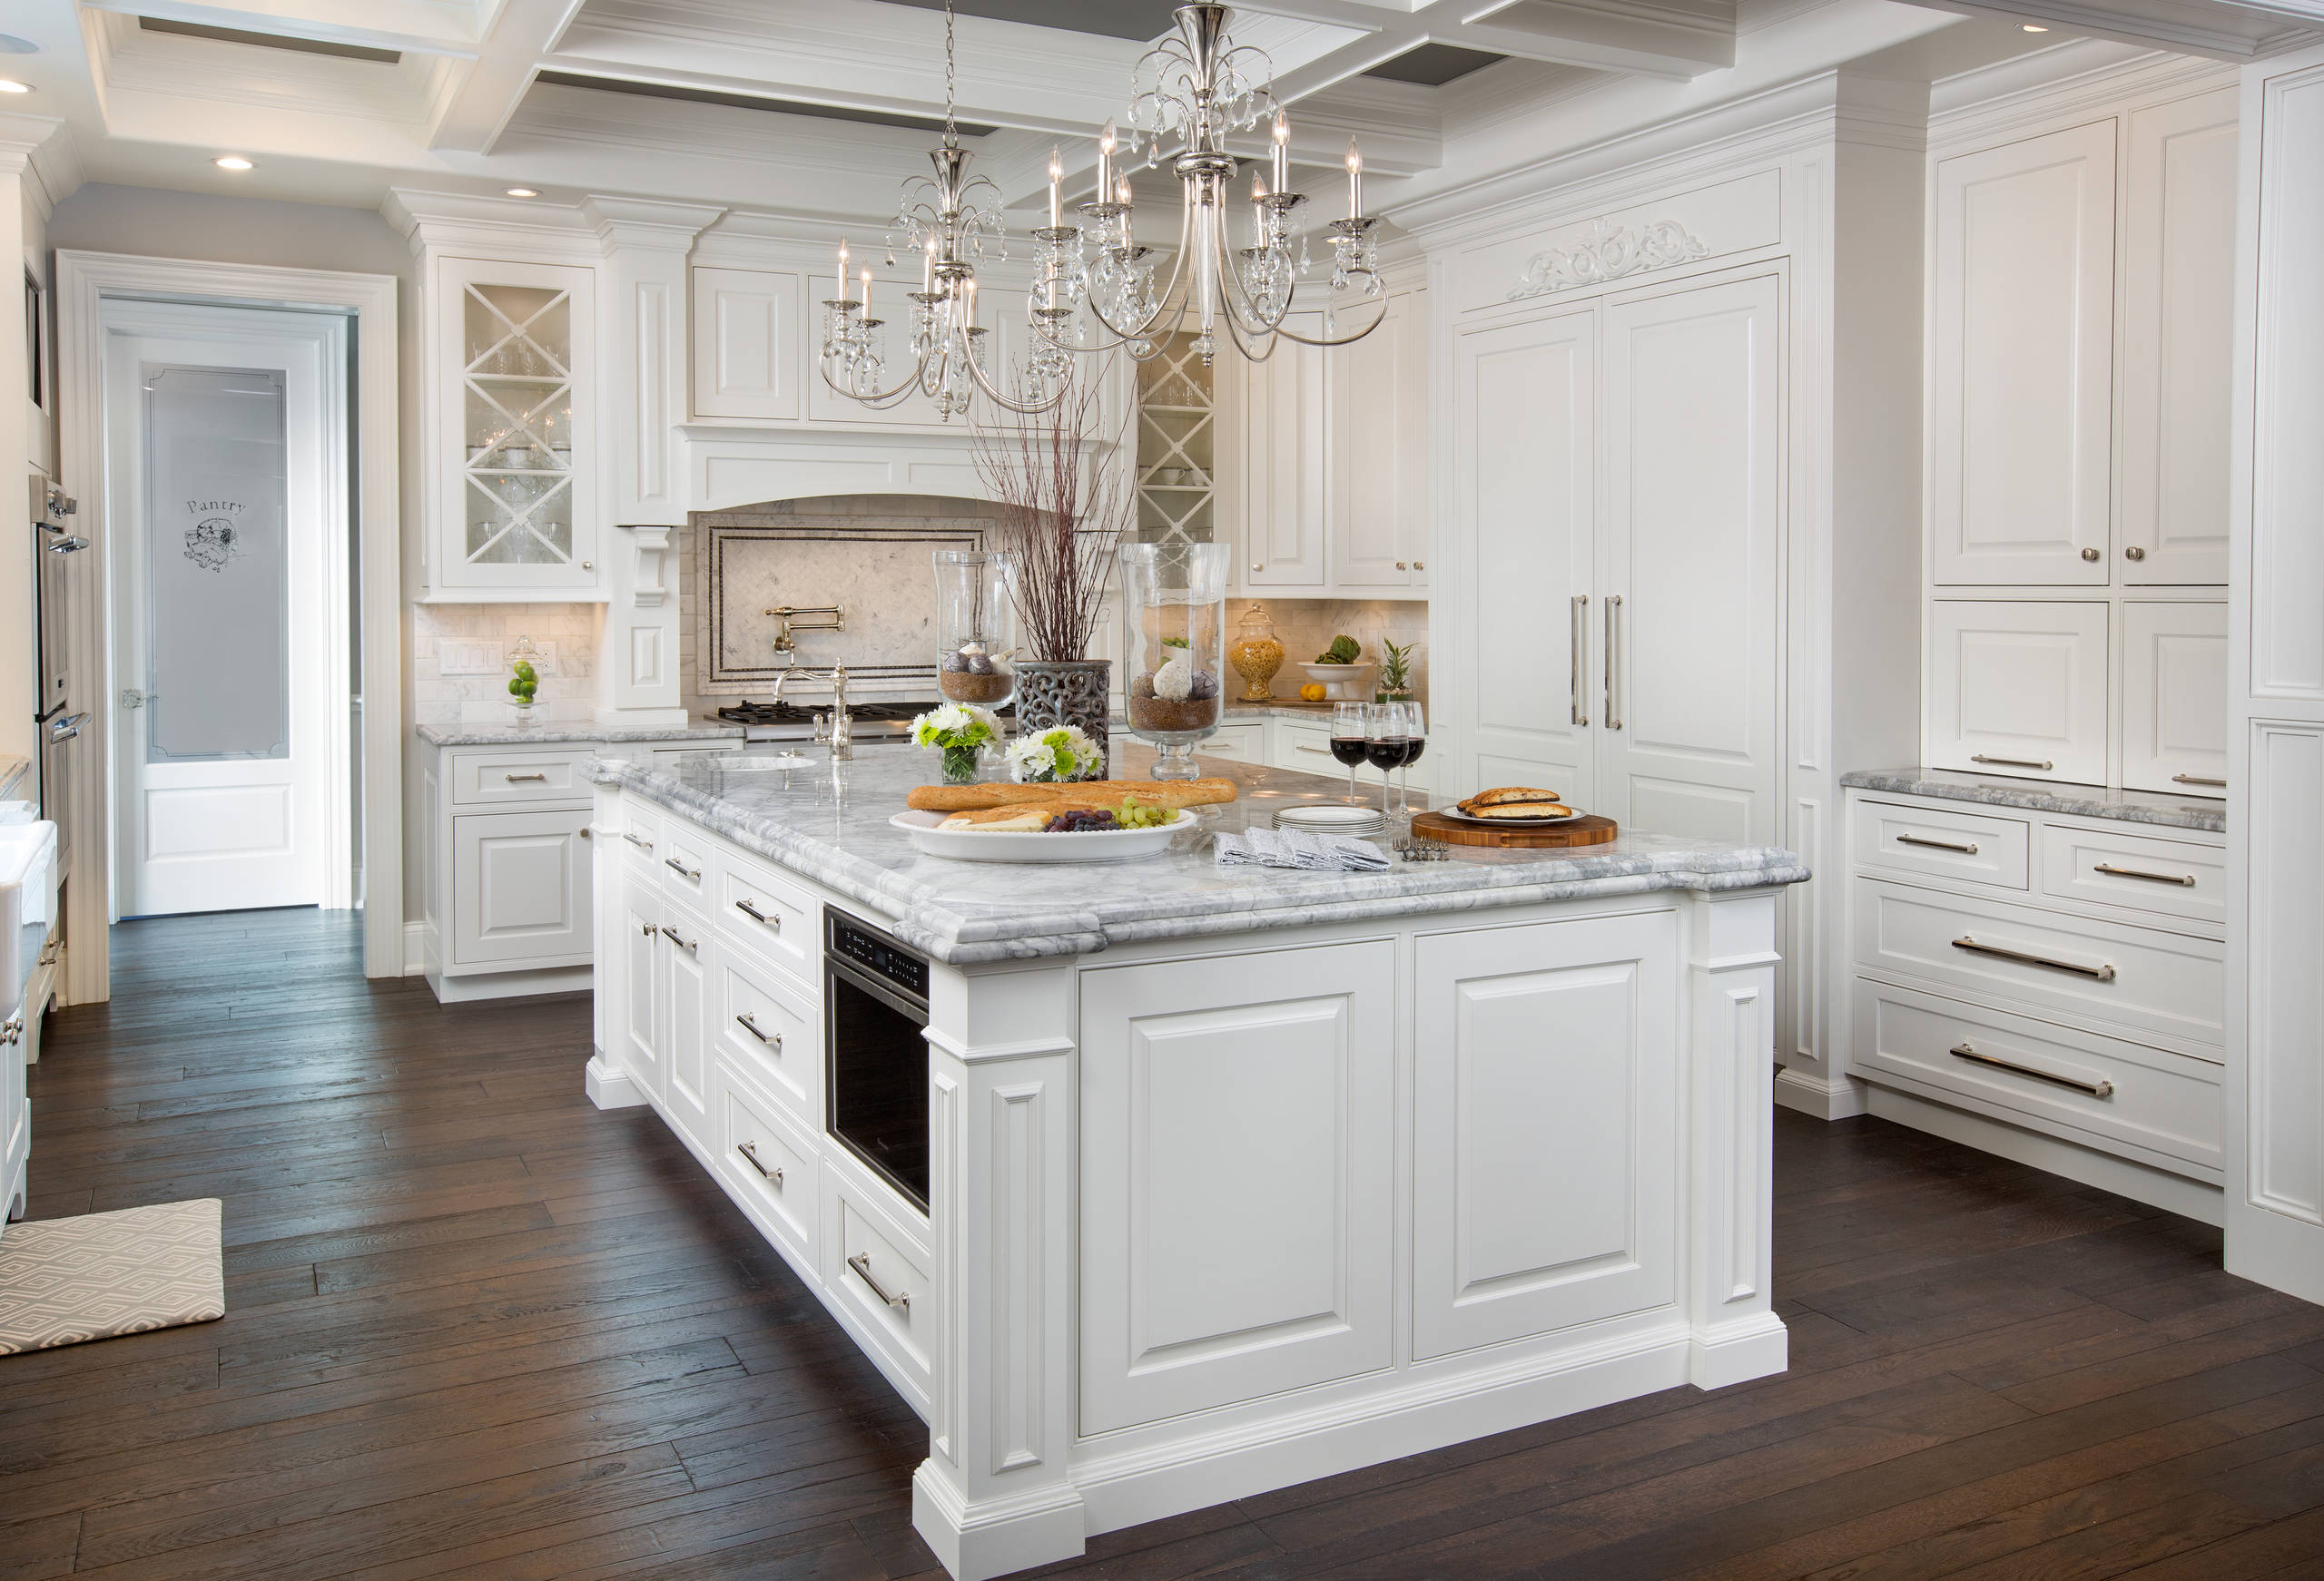 7 Steps To Decorating Your Dream Kitchen Make Sure To